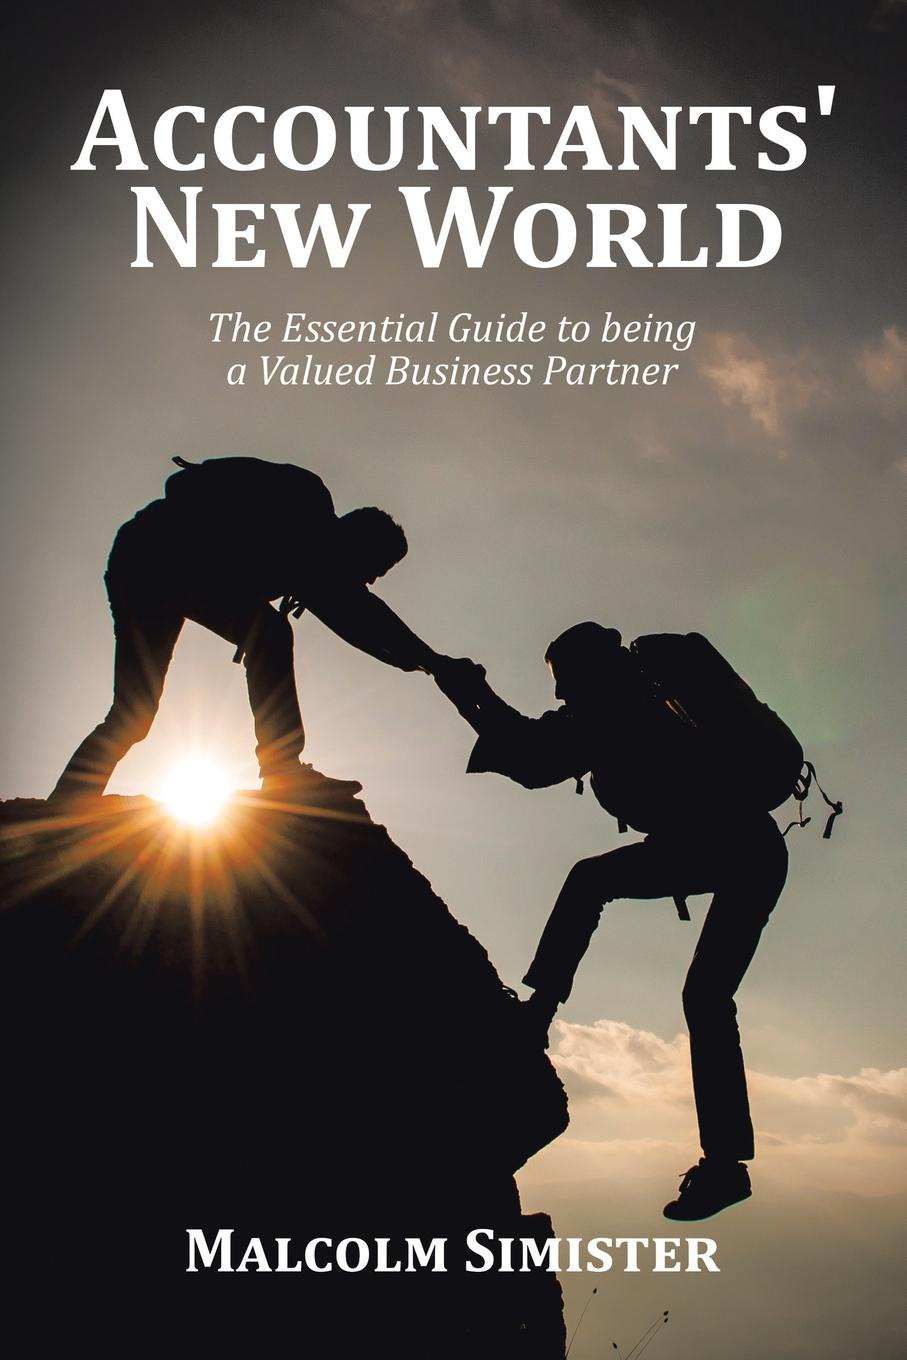 Malcolm Simister Accountants' New World. The Essential Guide to being a Valued Business Partner guy champniss brand valued how socially valued brands hold the key to a sustainable future and business success